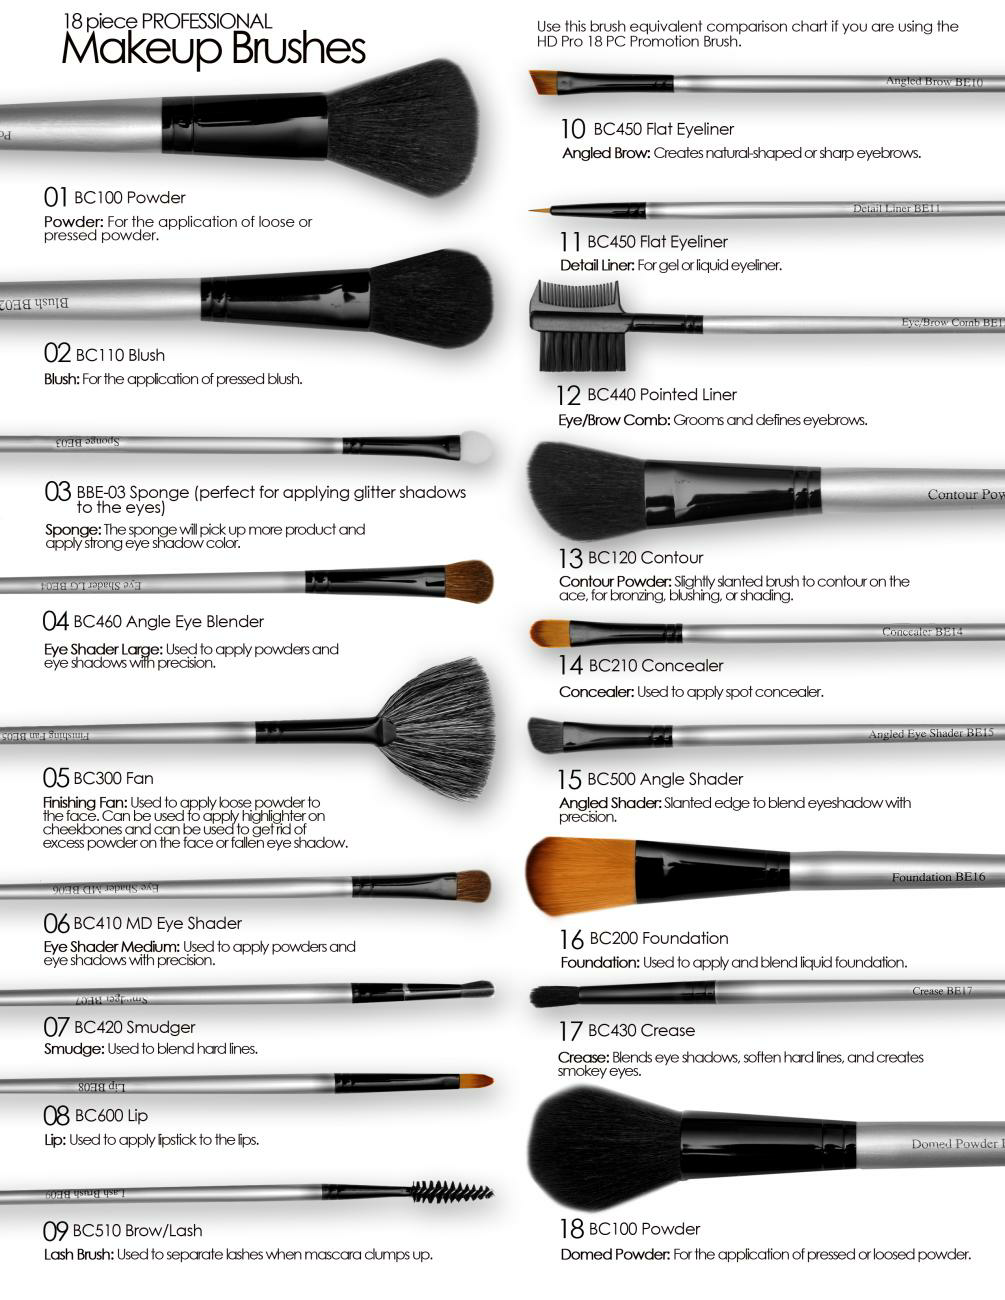 How to use eye brushes for makeup